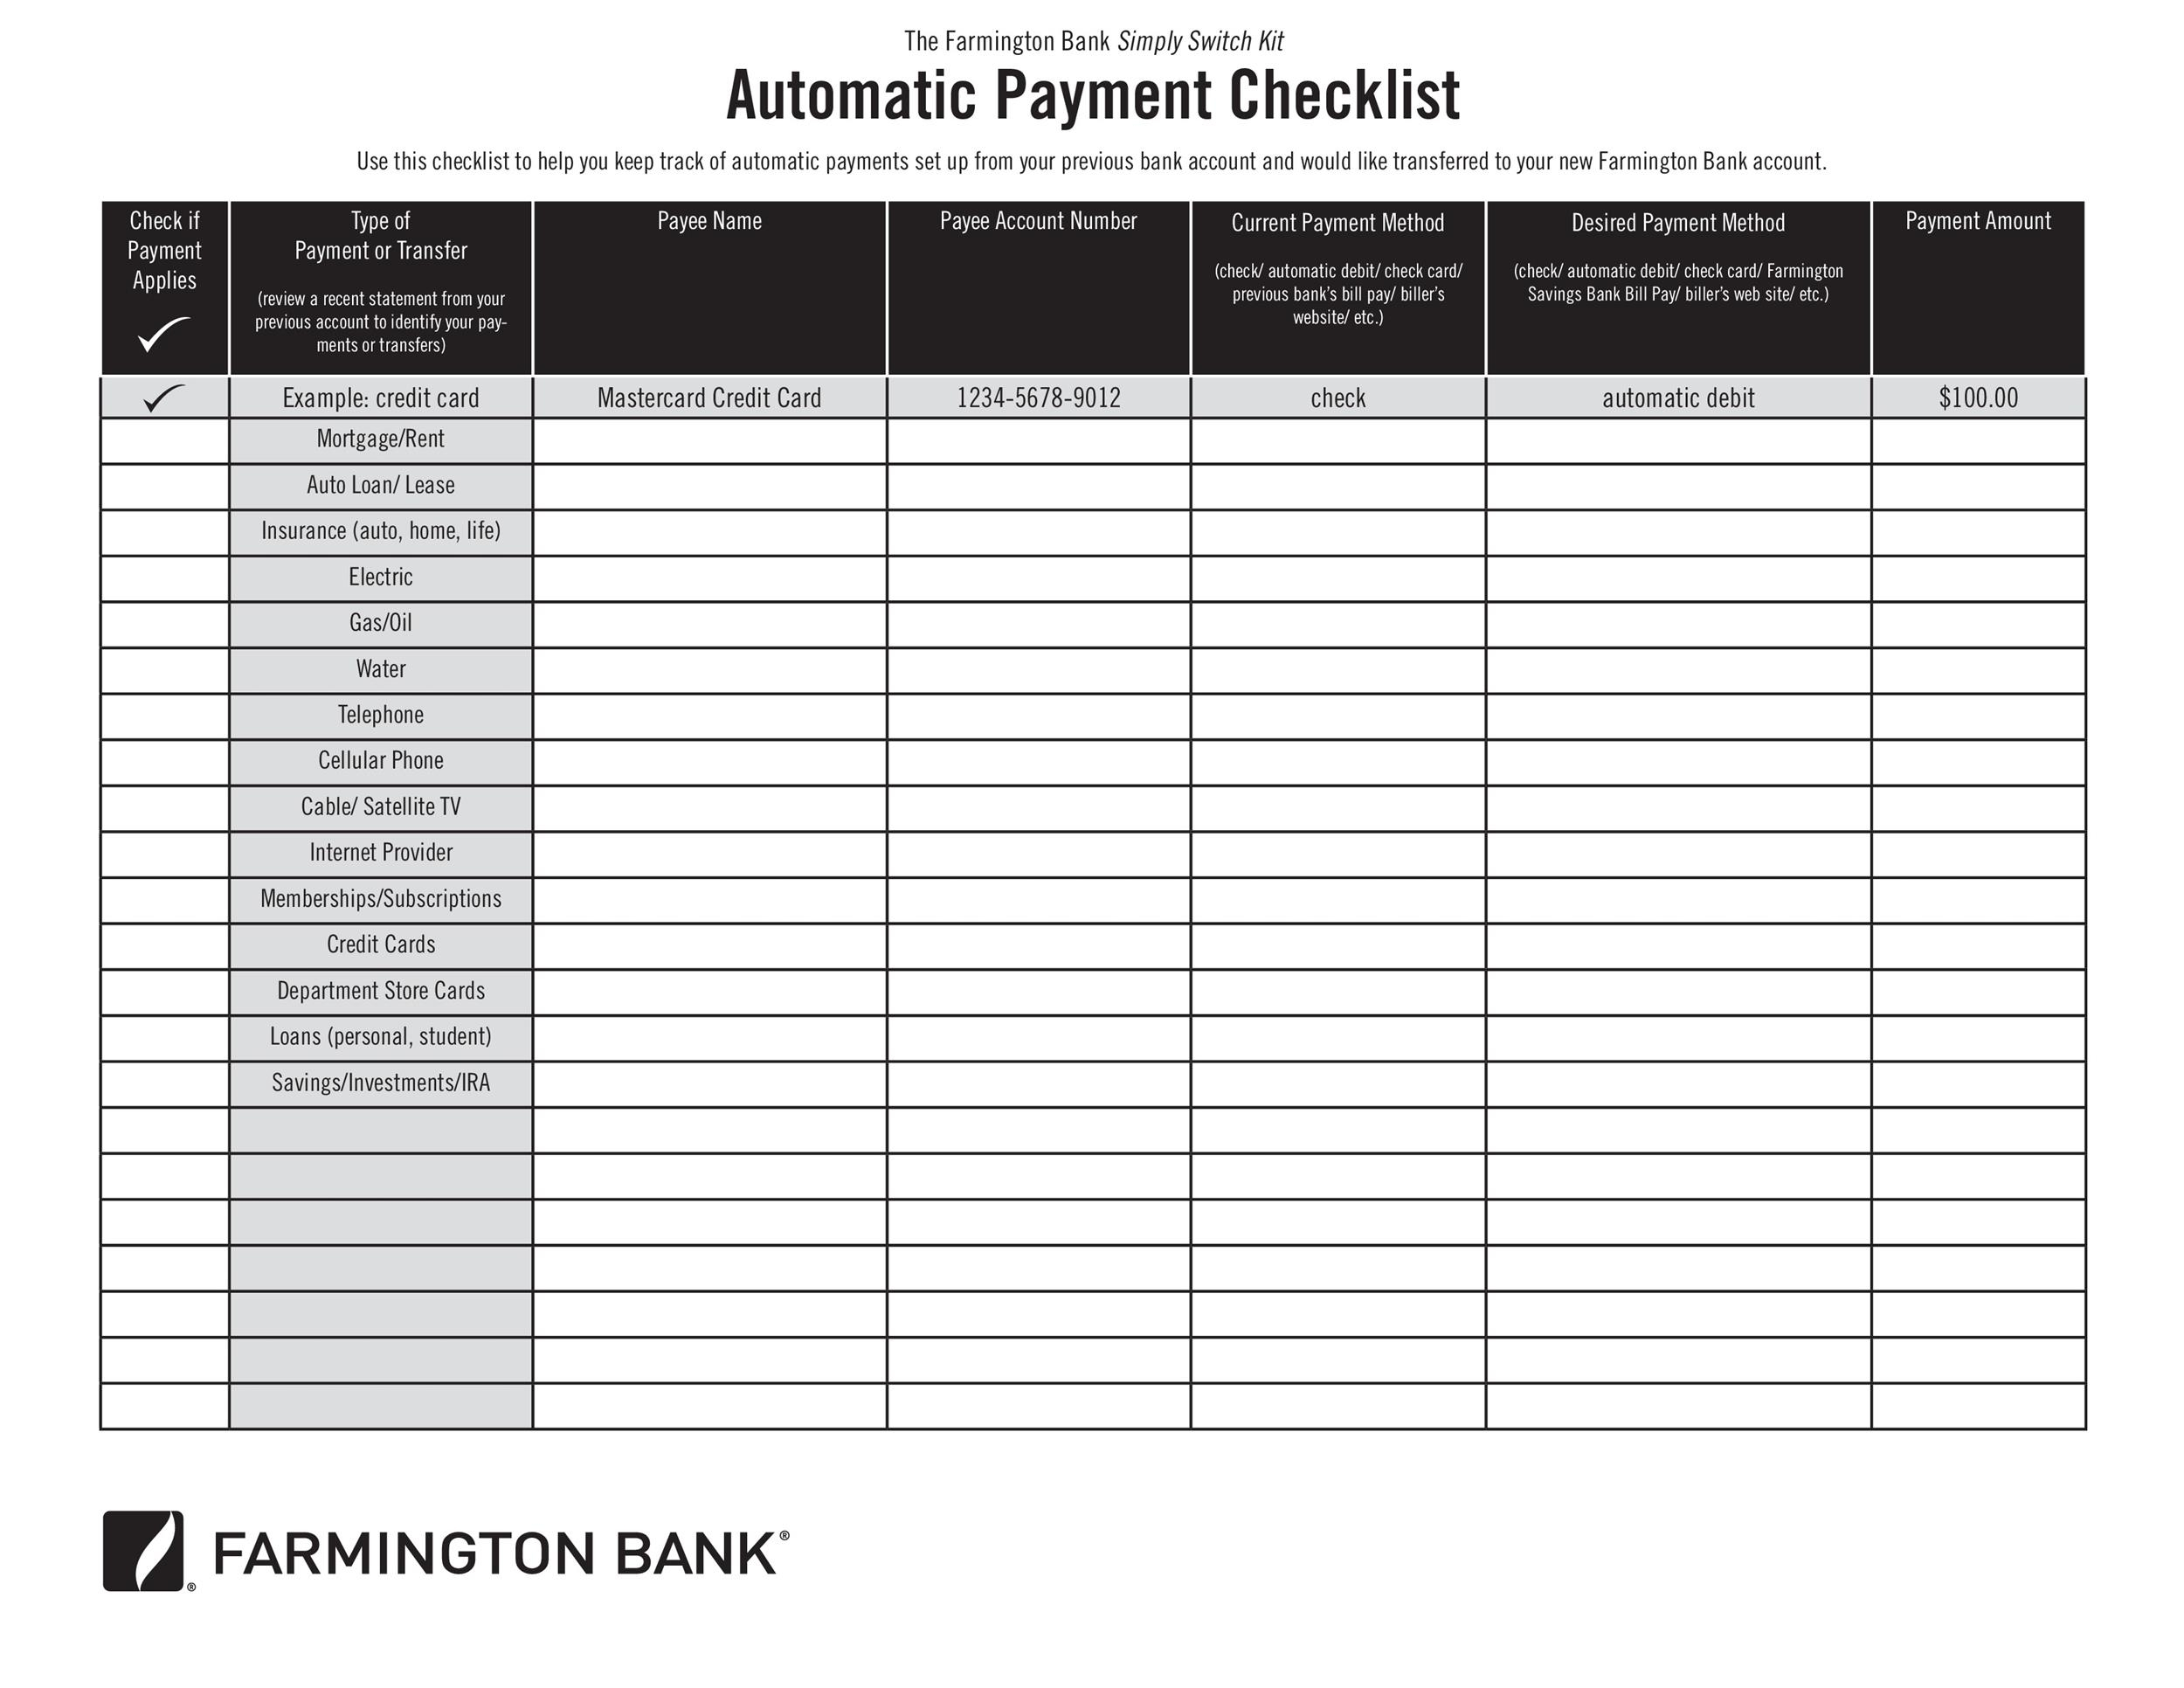 33 Free Bill Pay Checklists & Bill Calendars (Pdf, Word & Excel) intended for List Of Monthly Bills To Pay